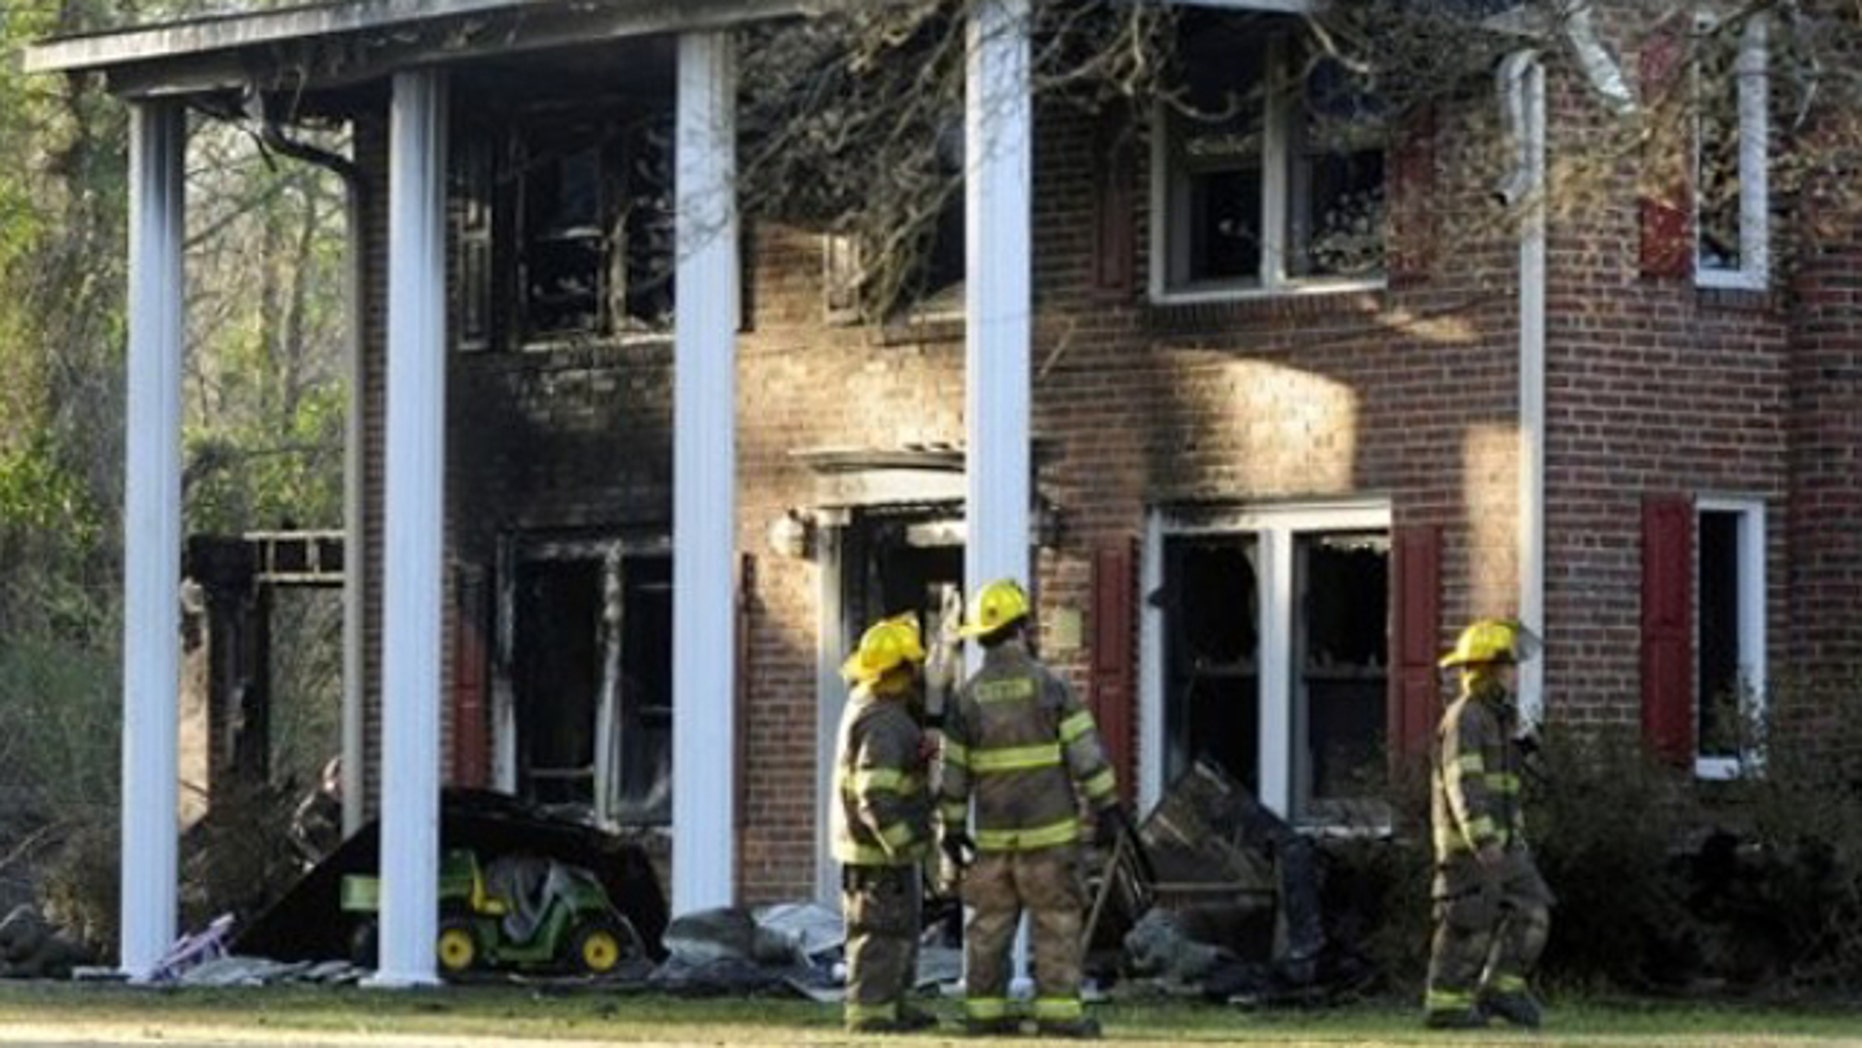 Mar. 6, 2012: Firefighters look at the front of a heavily damaged two- story home where a Special Forces soldier died trying to rescue his 2 small children during a house fire.